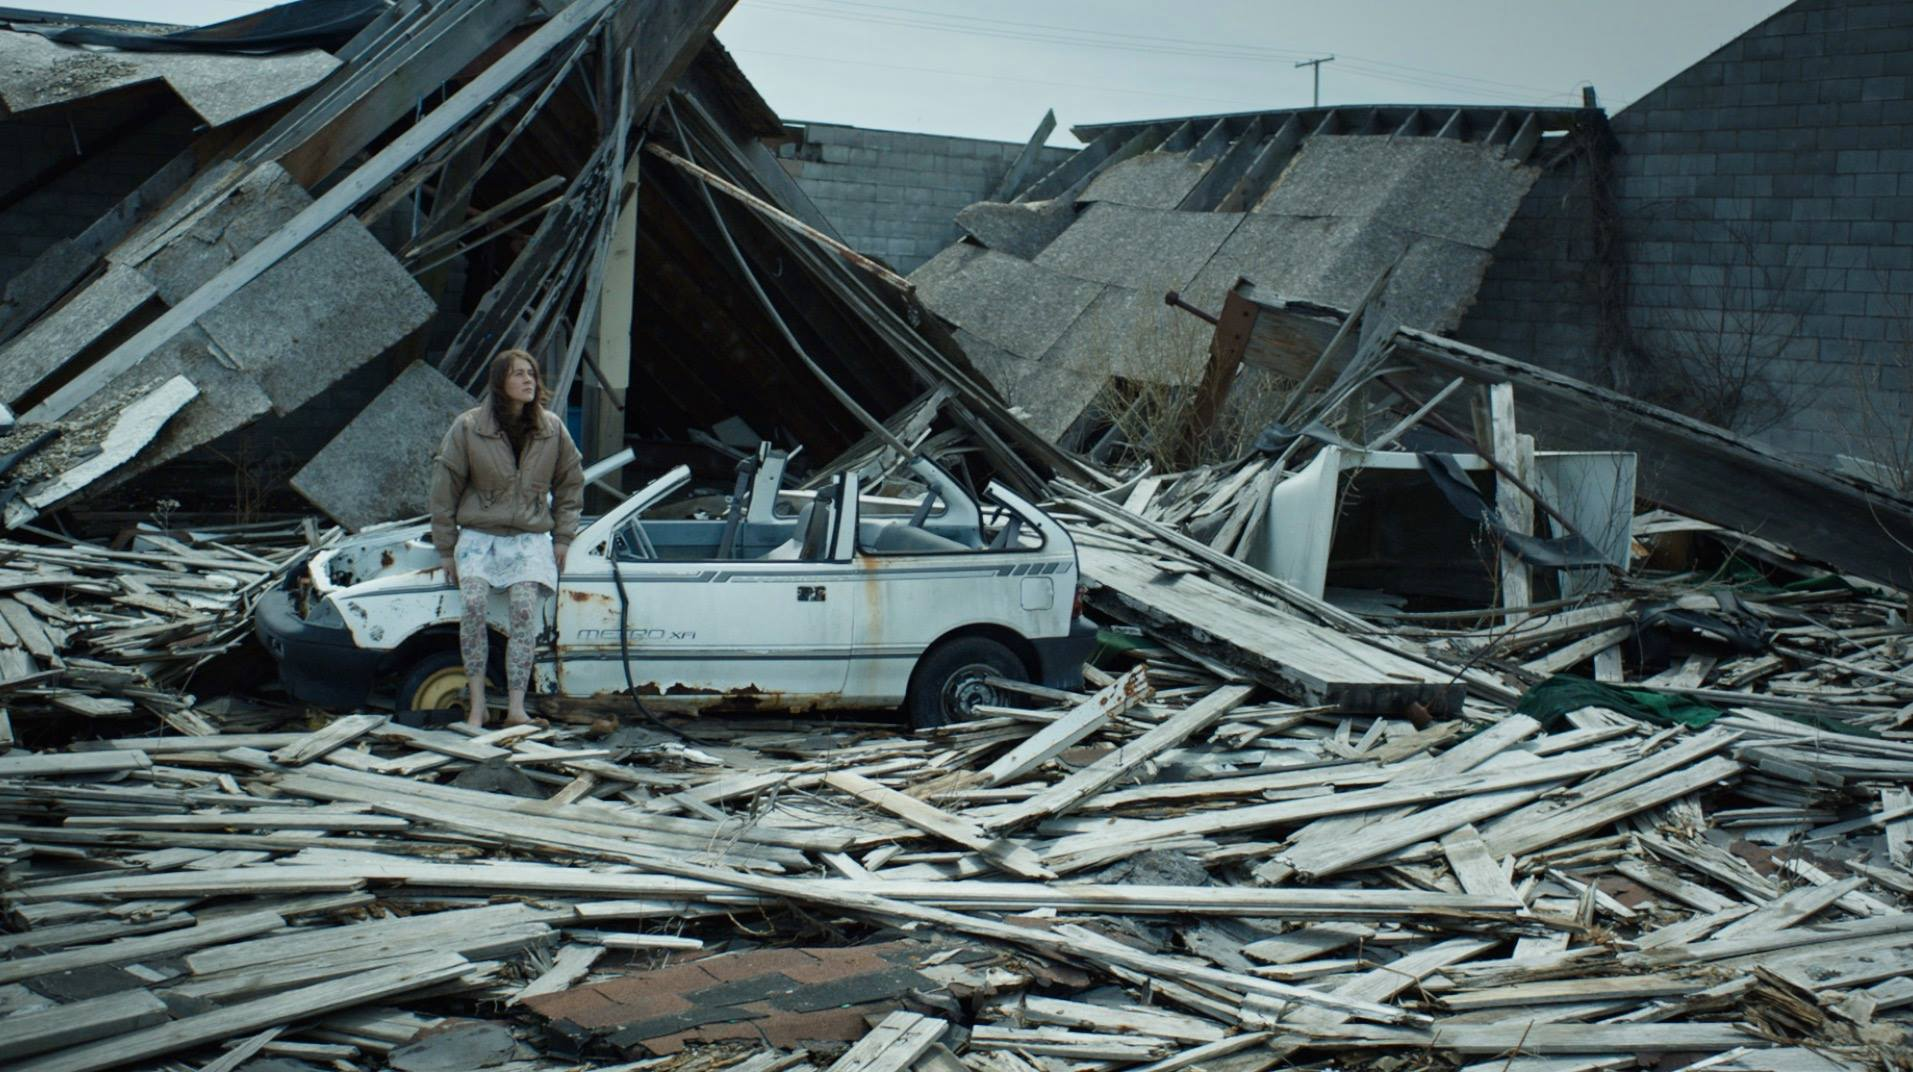 Iva Gocheva stands in the ruins of a house in Embers (2015)